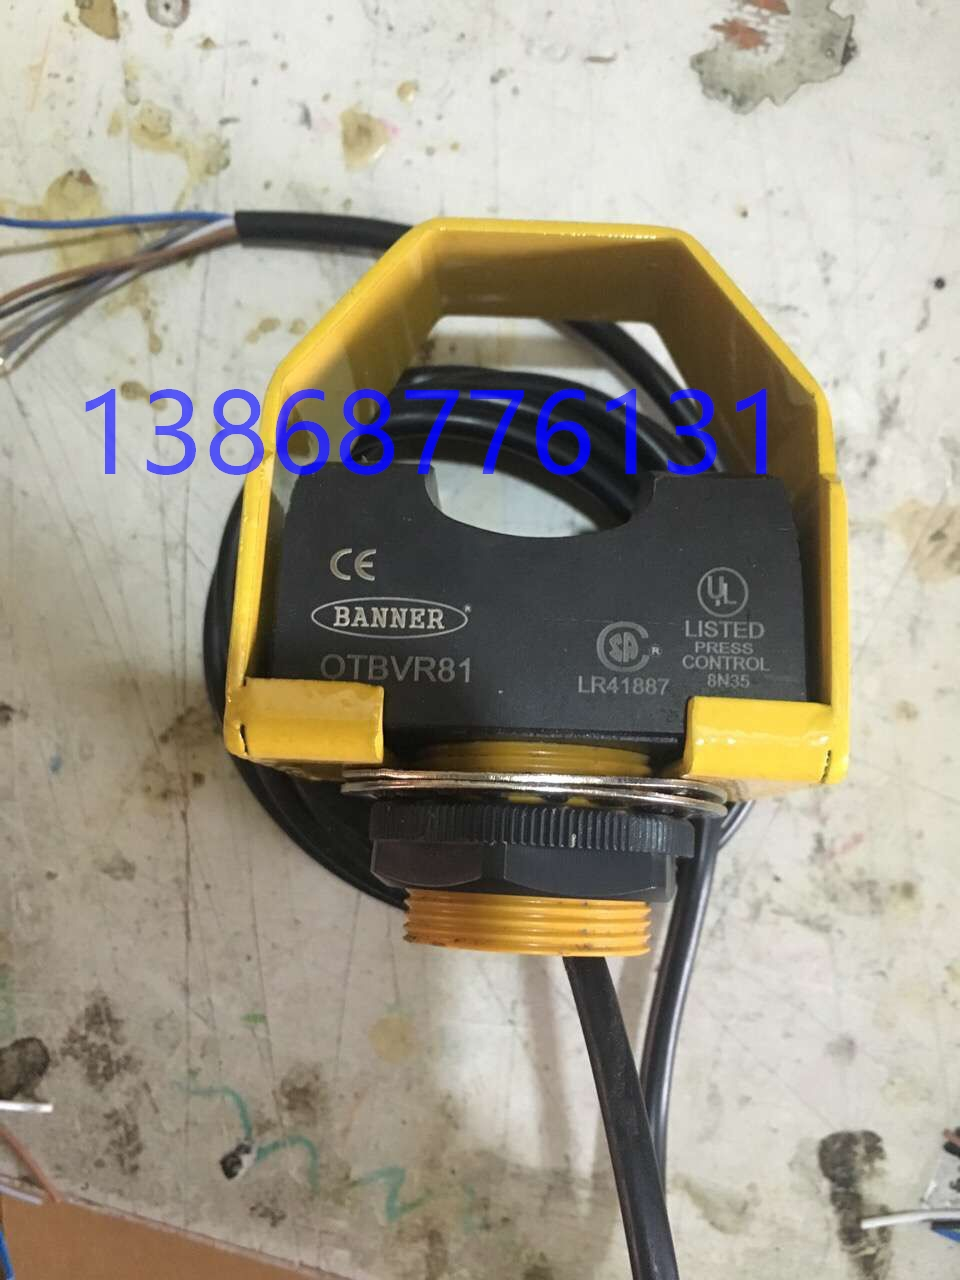 New original  OTBVR81  Warranty For Two Year new original ig5602 warranty for two year